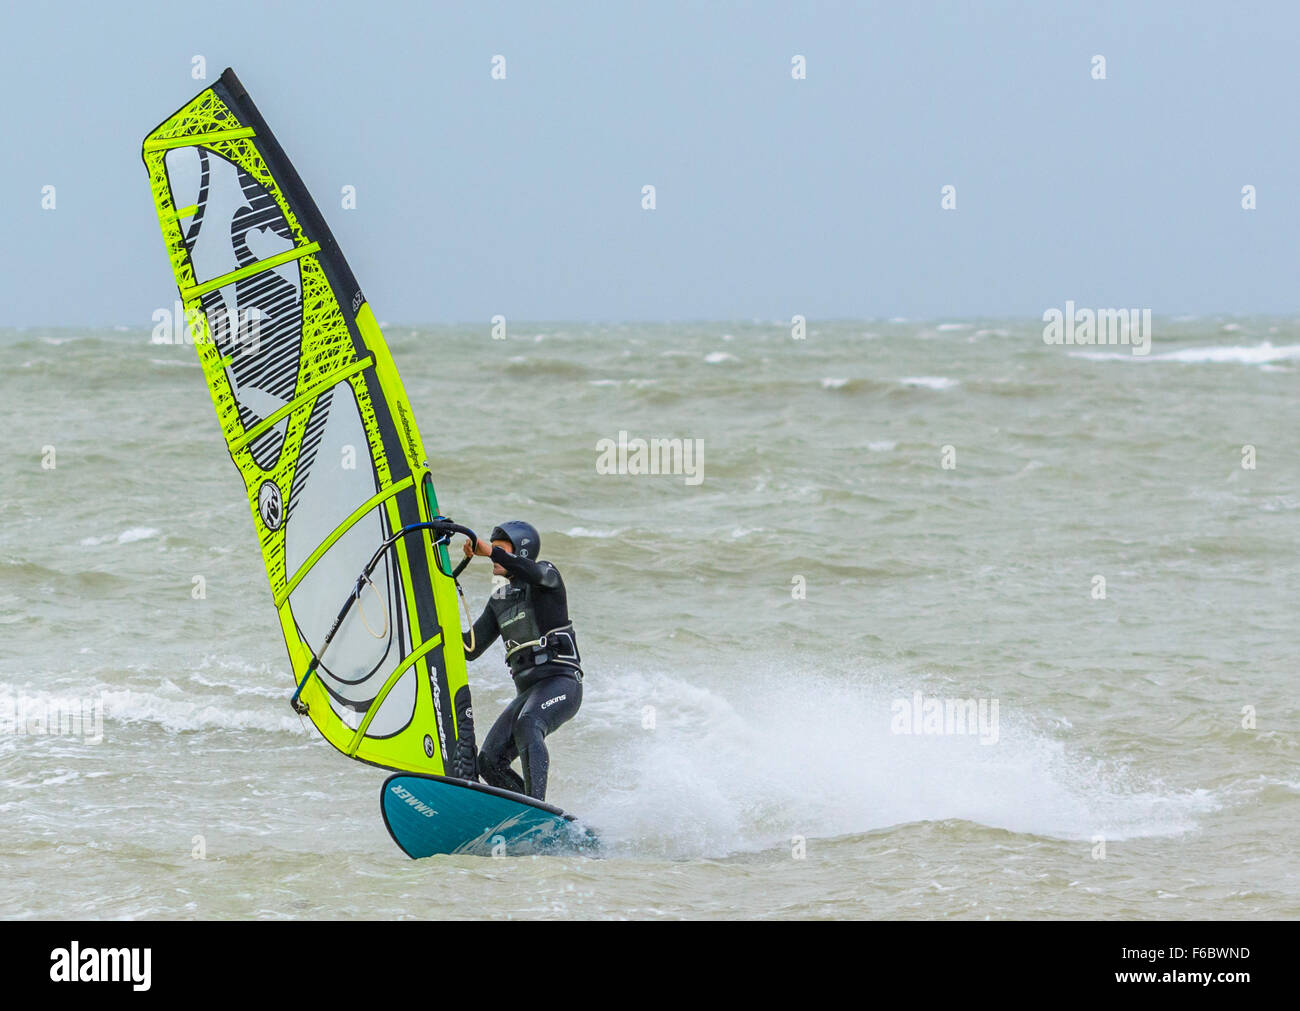 Windsurfing on a rough sea. - Stock Image